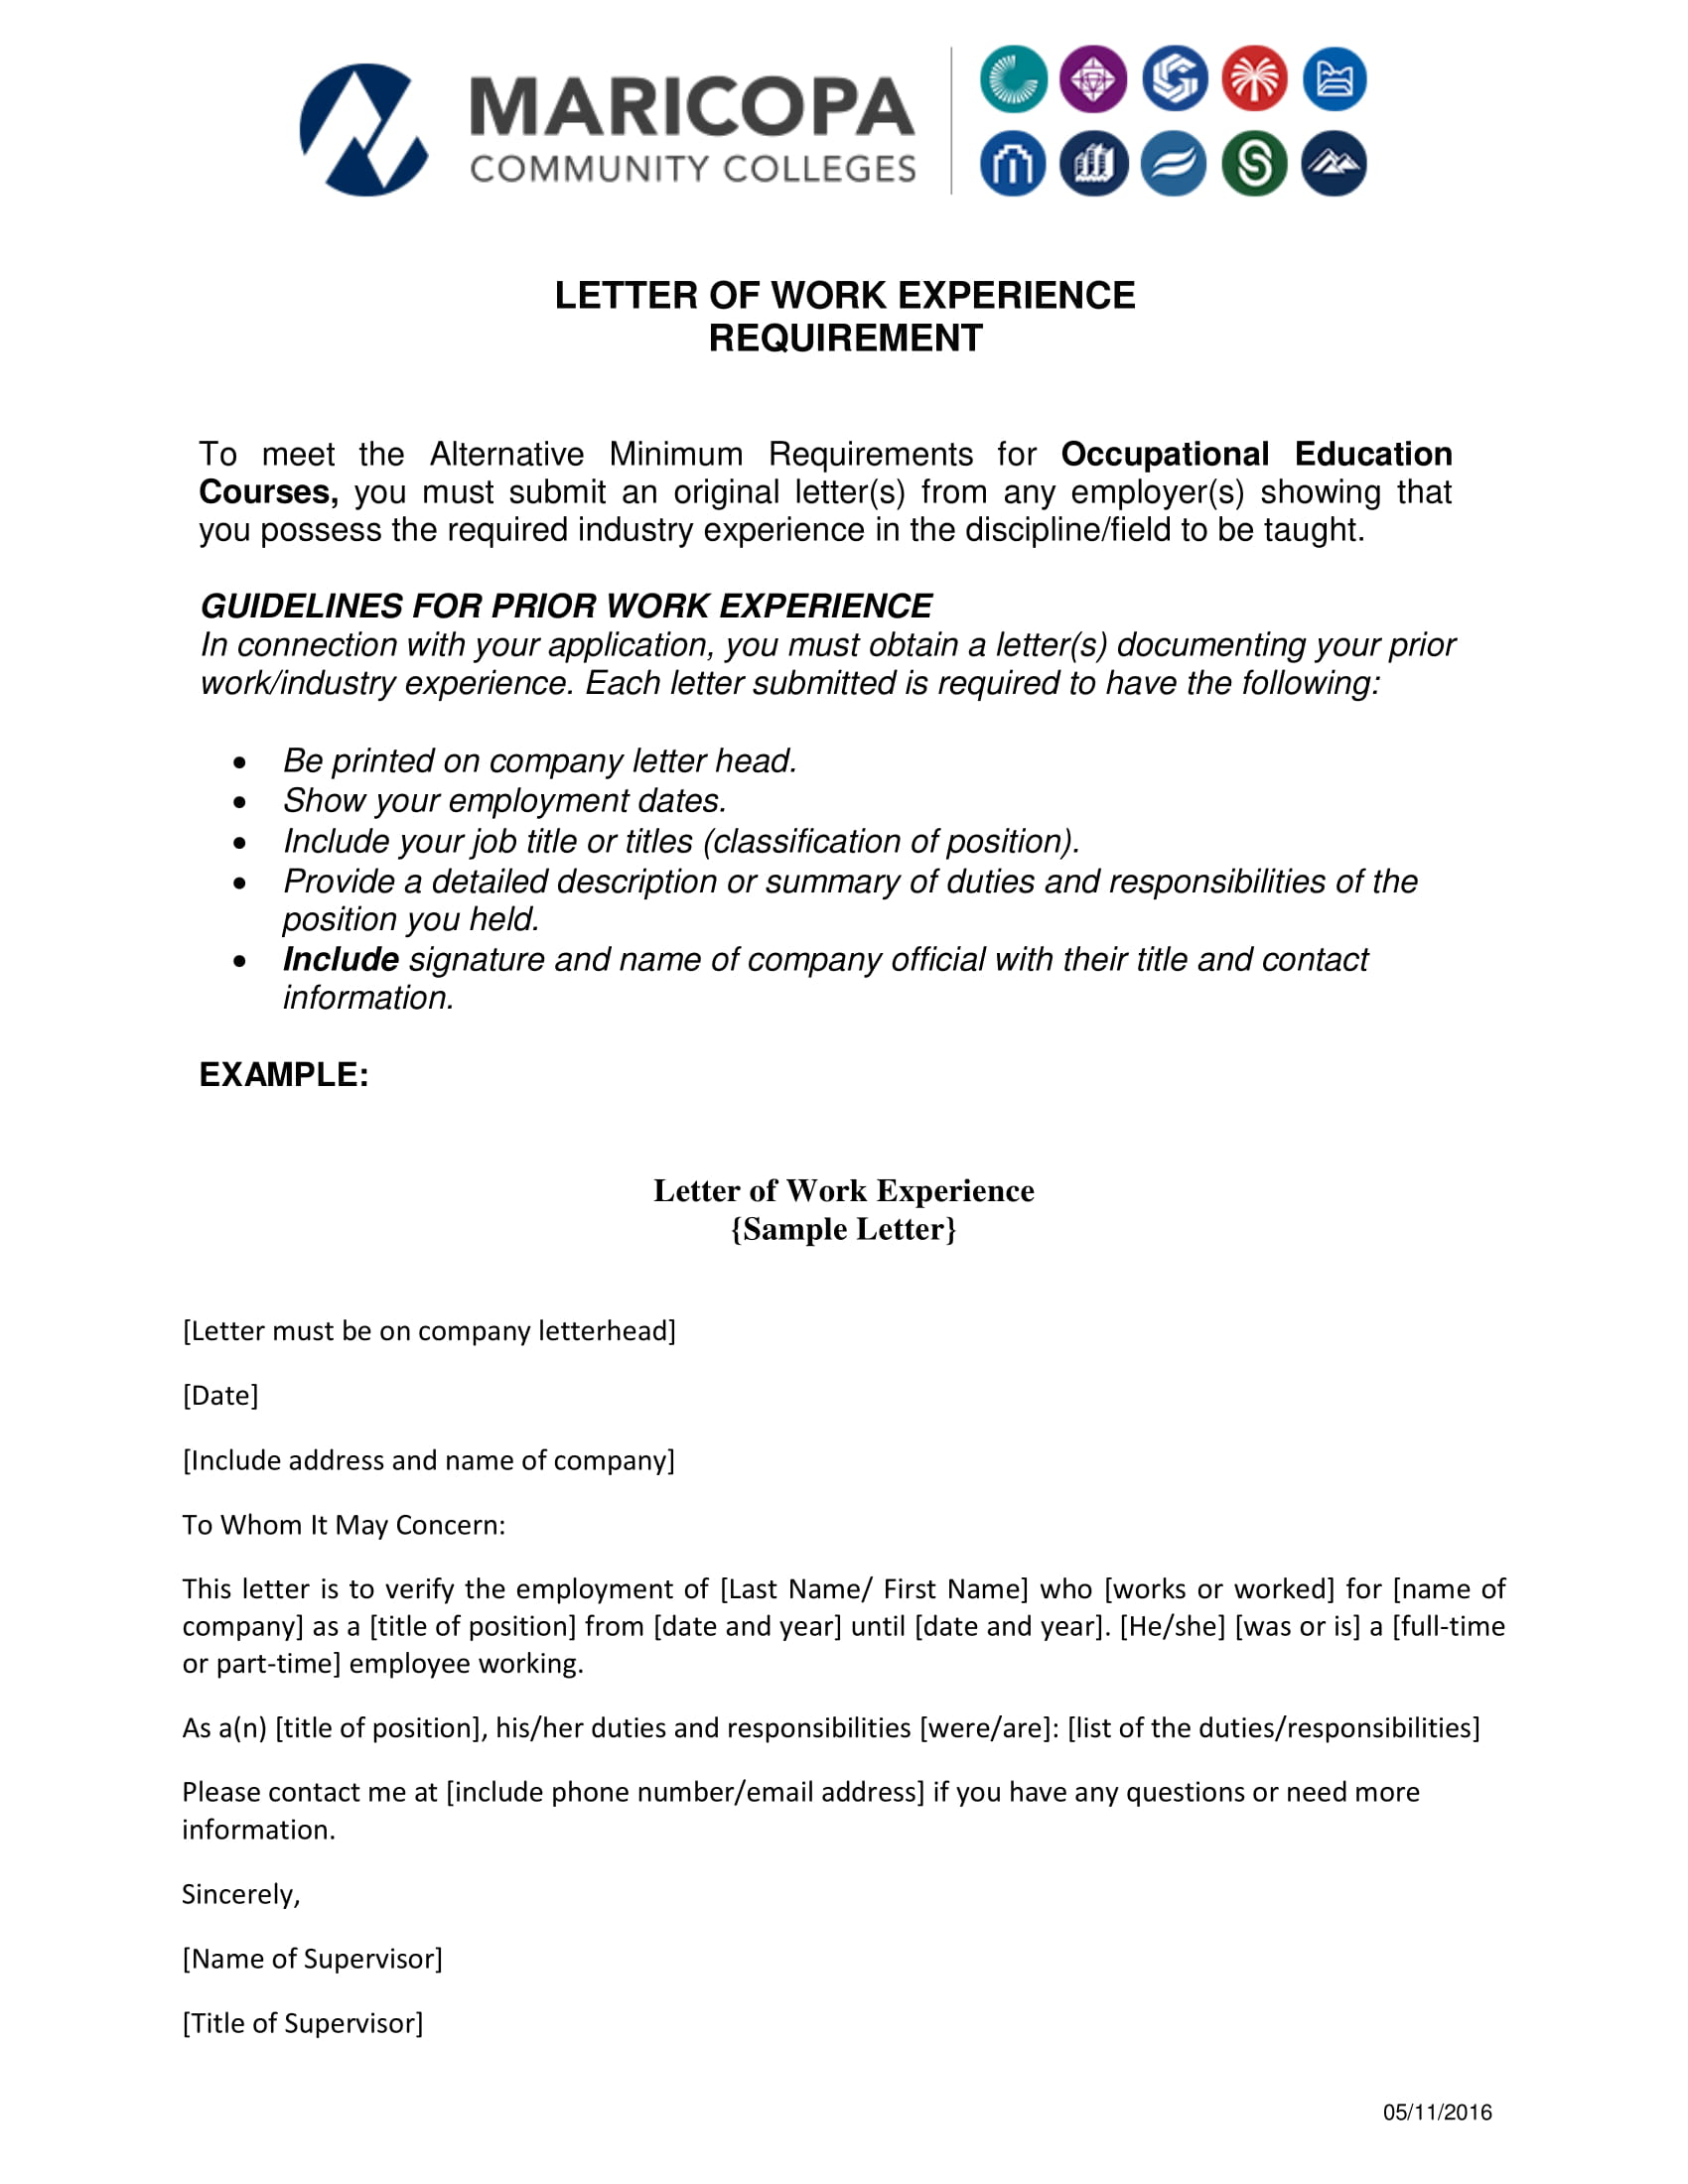 verification letter of work experience example